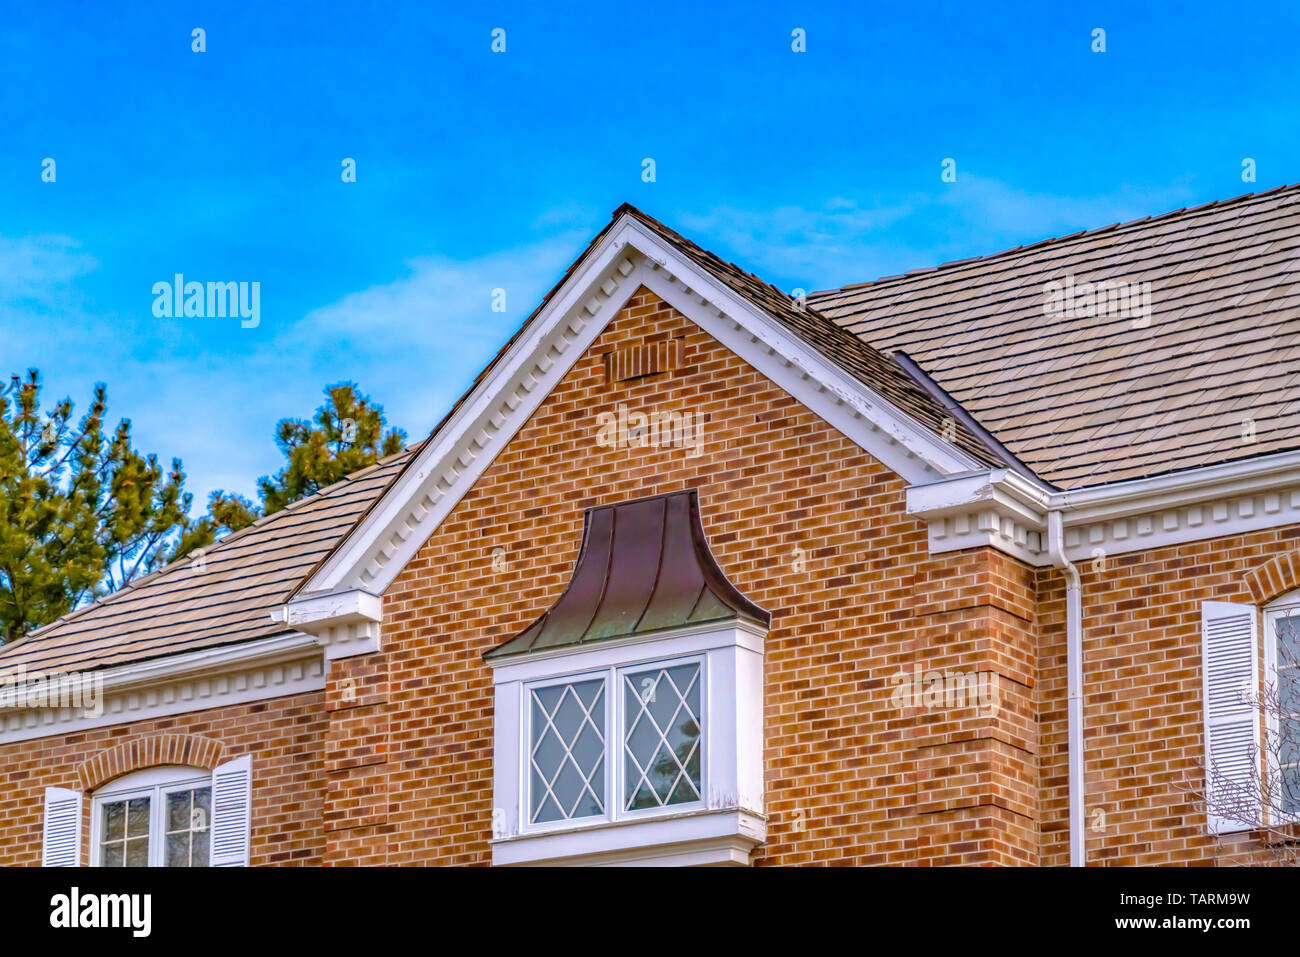 luxurious exterior of a house with lush trees and serene sky background the house features a classic brick wall and windows with white frames TARM9W